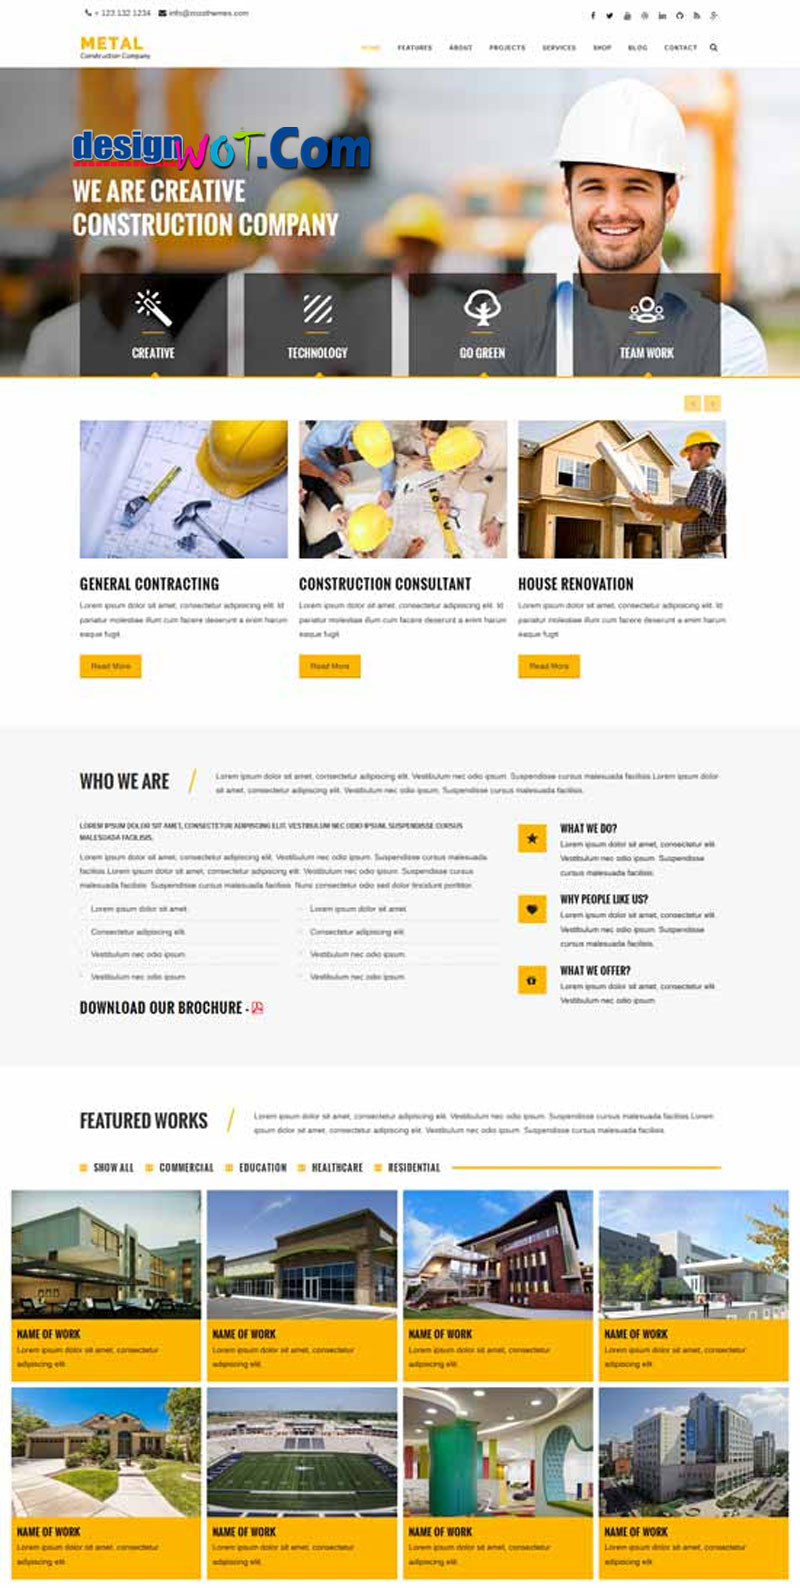 METAL Mobile Friendly Building Construction Business Template